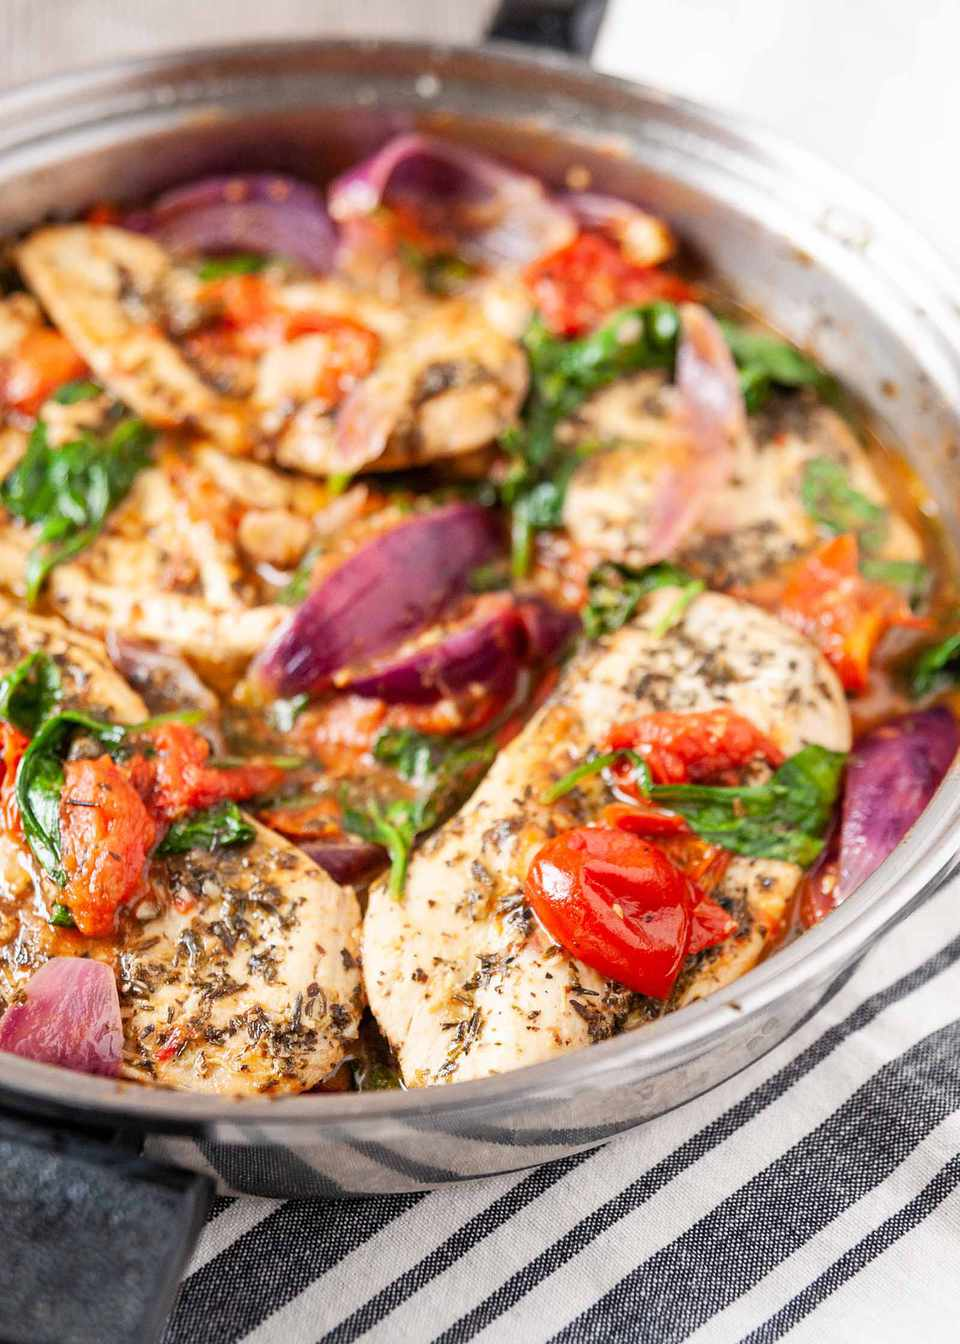 Chicken Recipe in Skillet with Italian Seasonings-close up of chicken and vegetables in a silver skillet